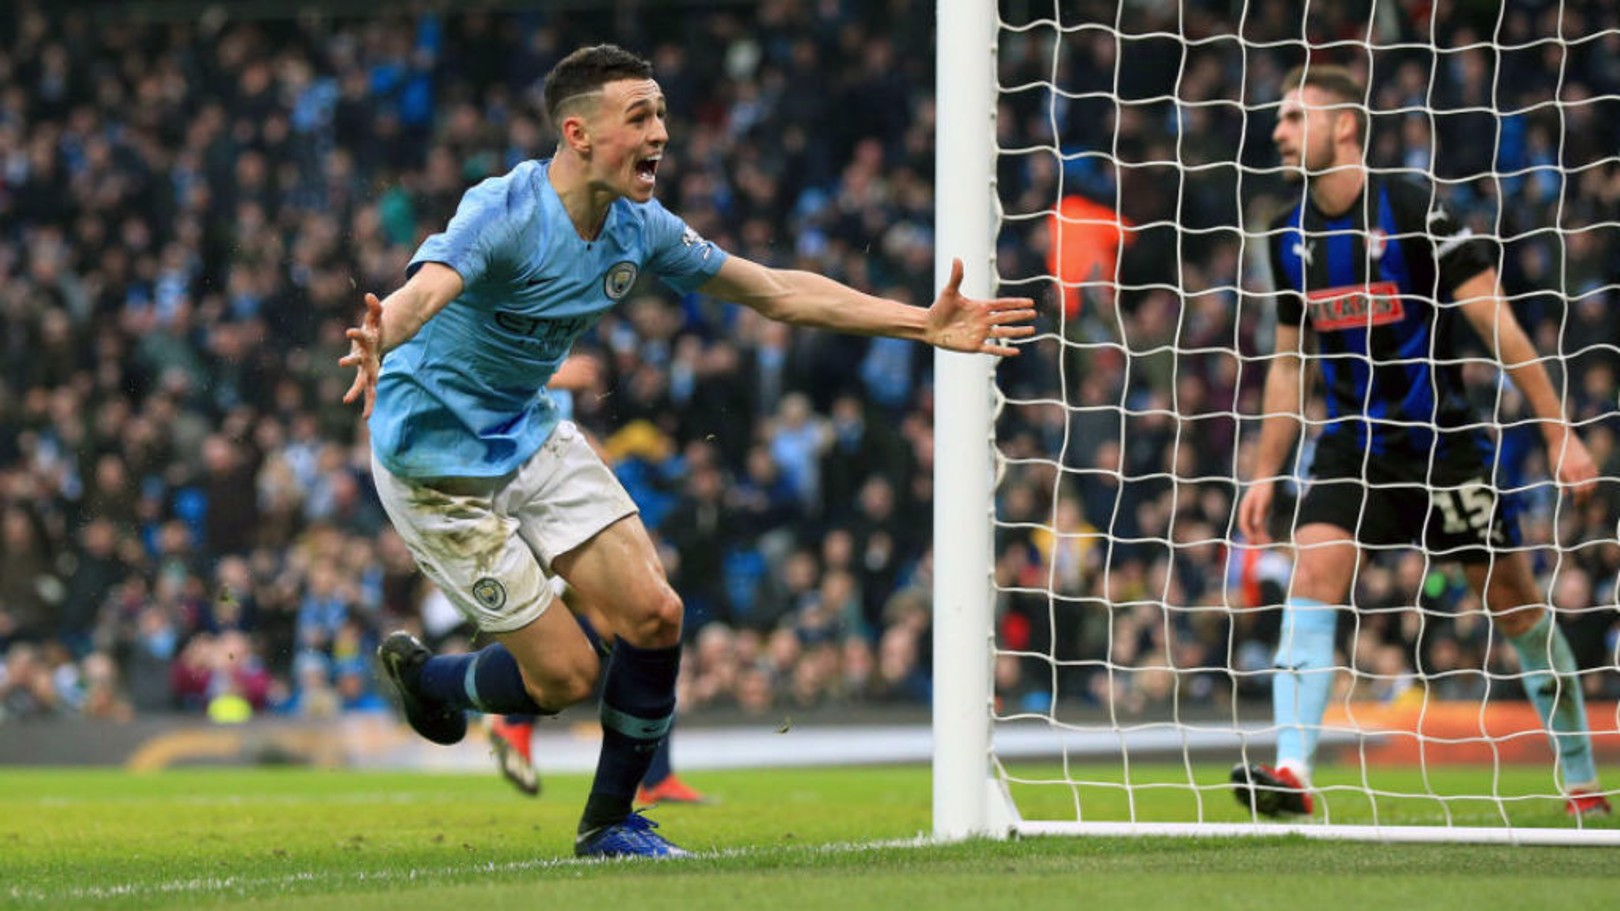 MAGIC MOMENT: Phil Foden celebrates his first senior goal at the Etihad in Sunday's FA Cup win over Rotherham